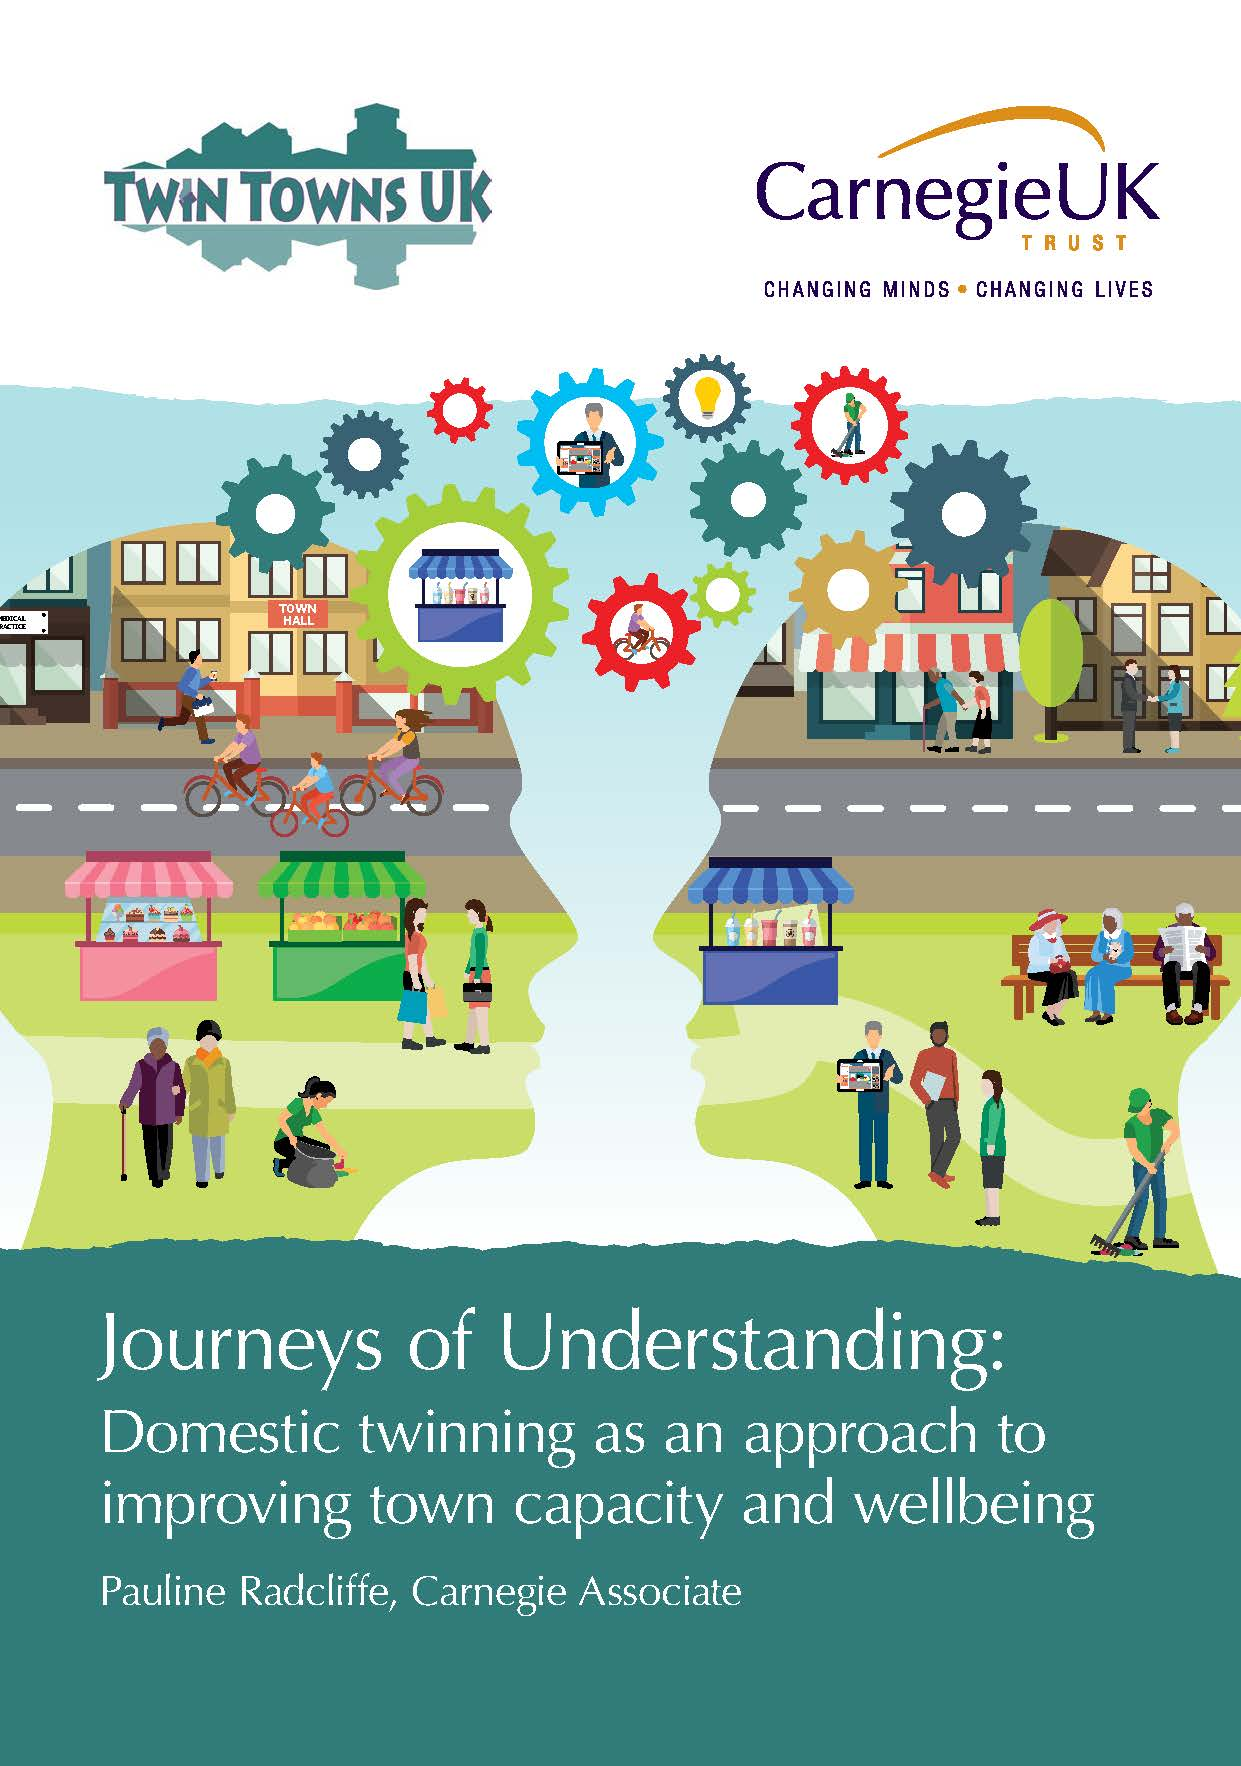 Journeys of Understanding: Domestic twinning as an approach to improving town capacity and wellbeing